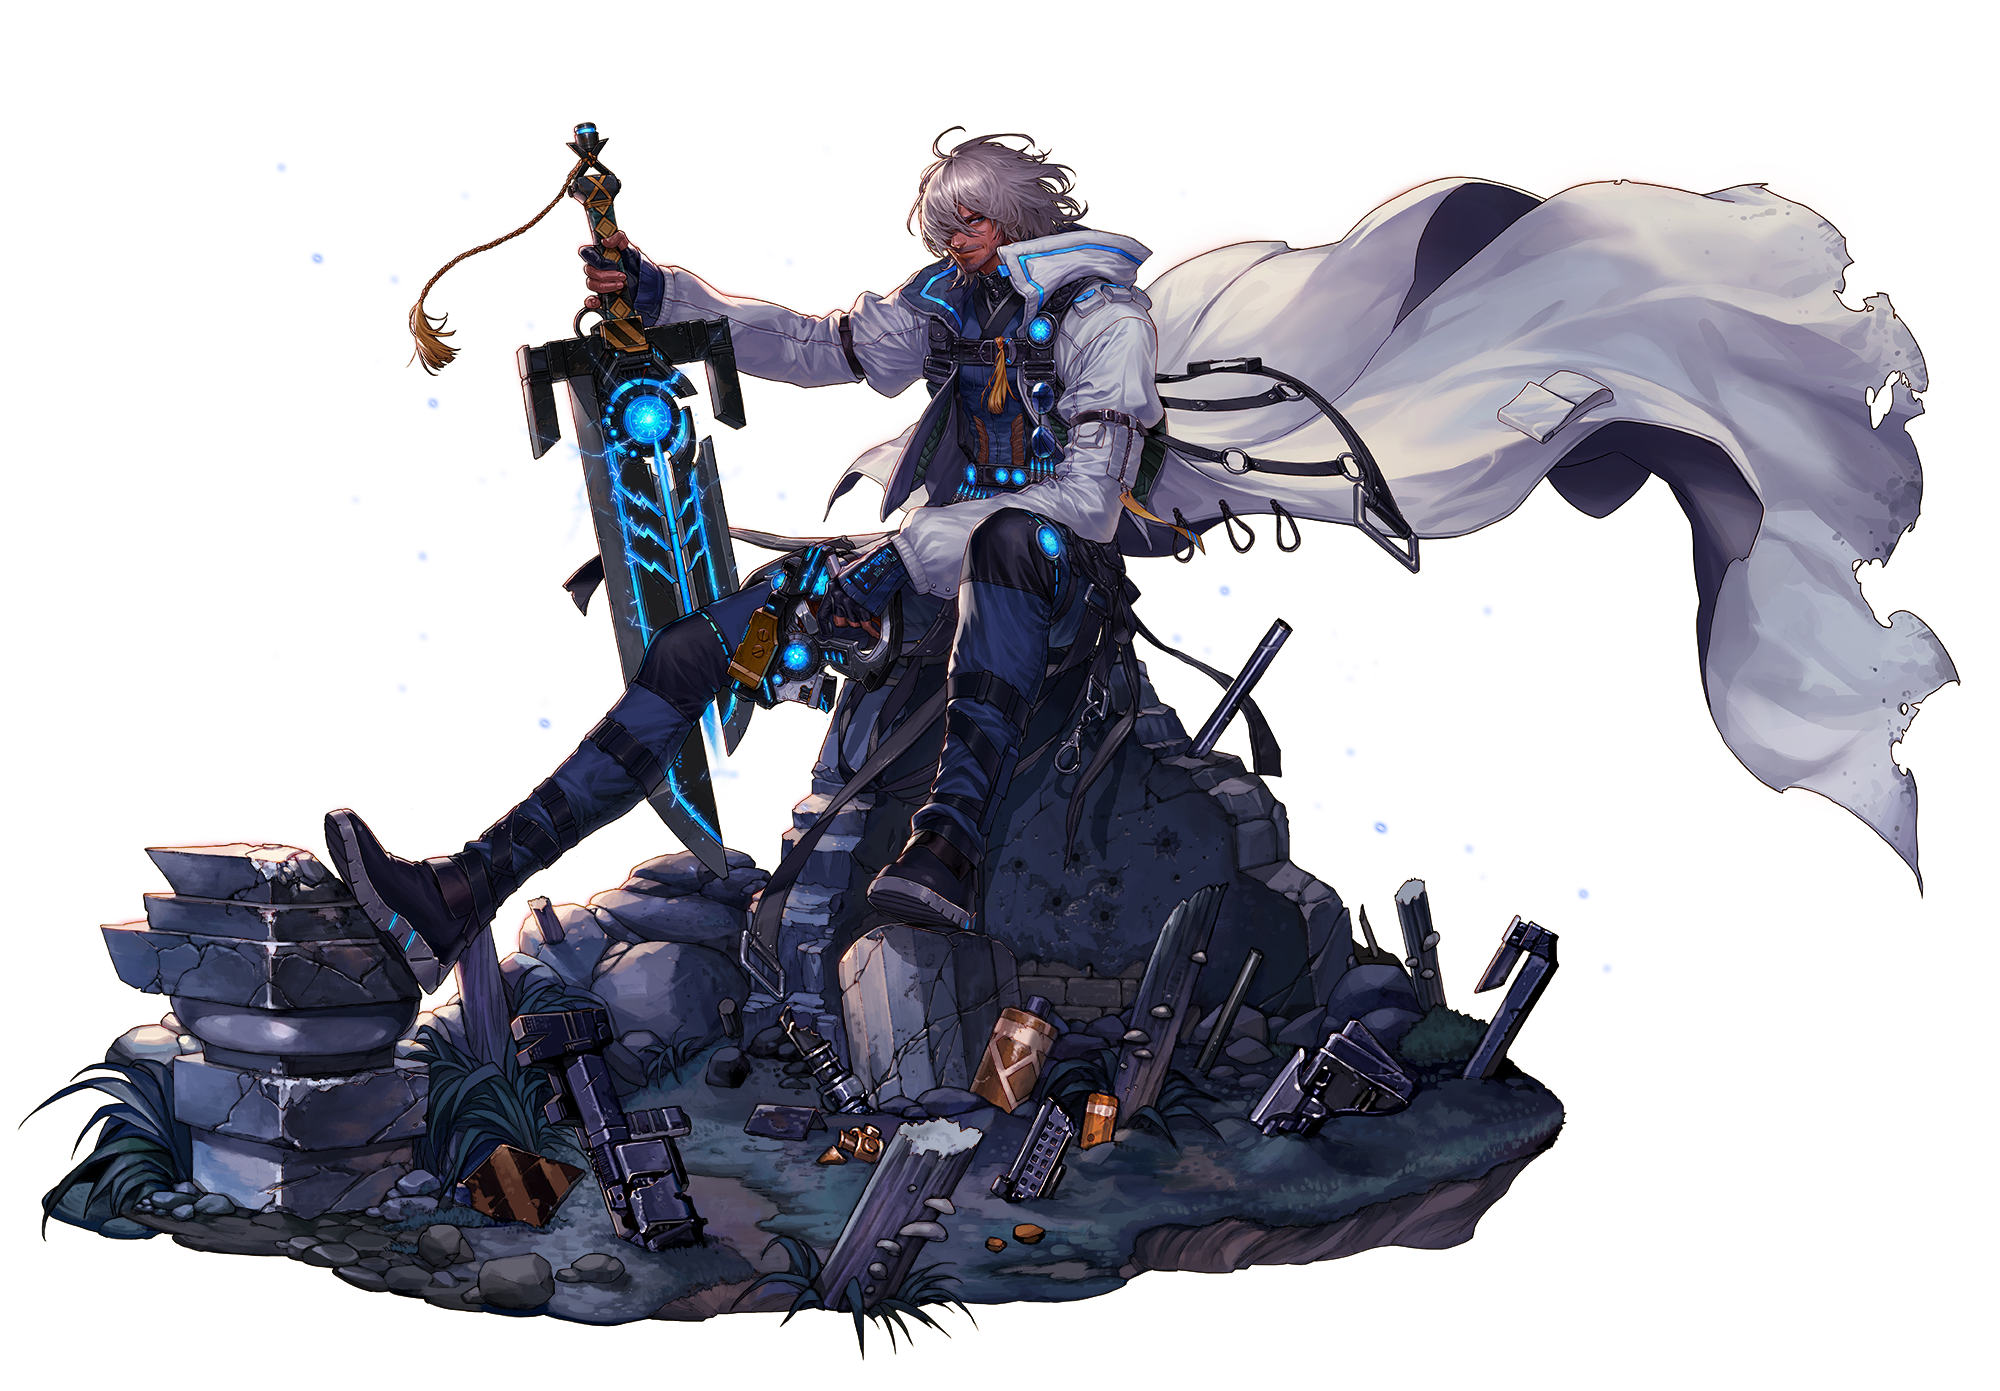 Your thoughts regarding DFO's new character - Gunblader? - Elsword